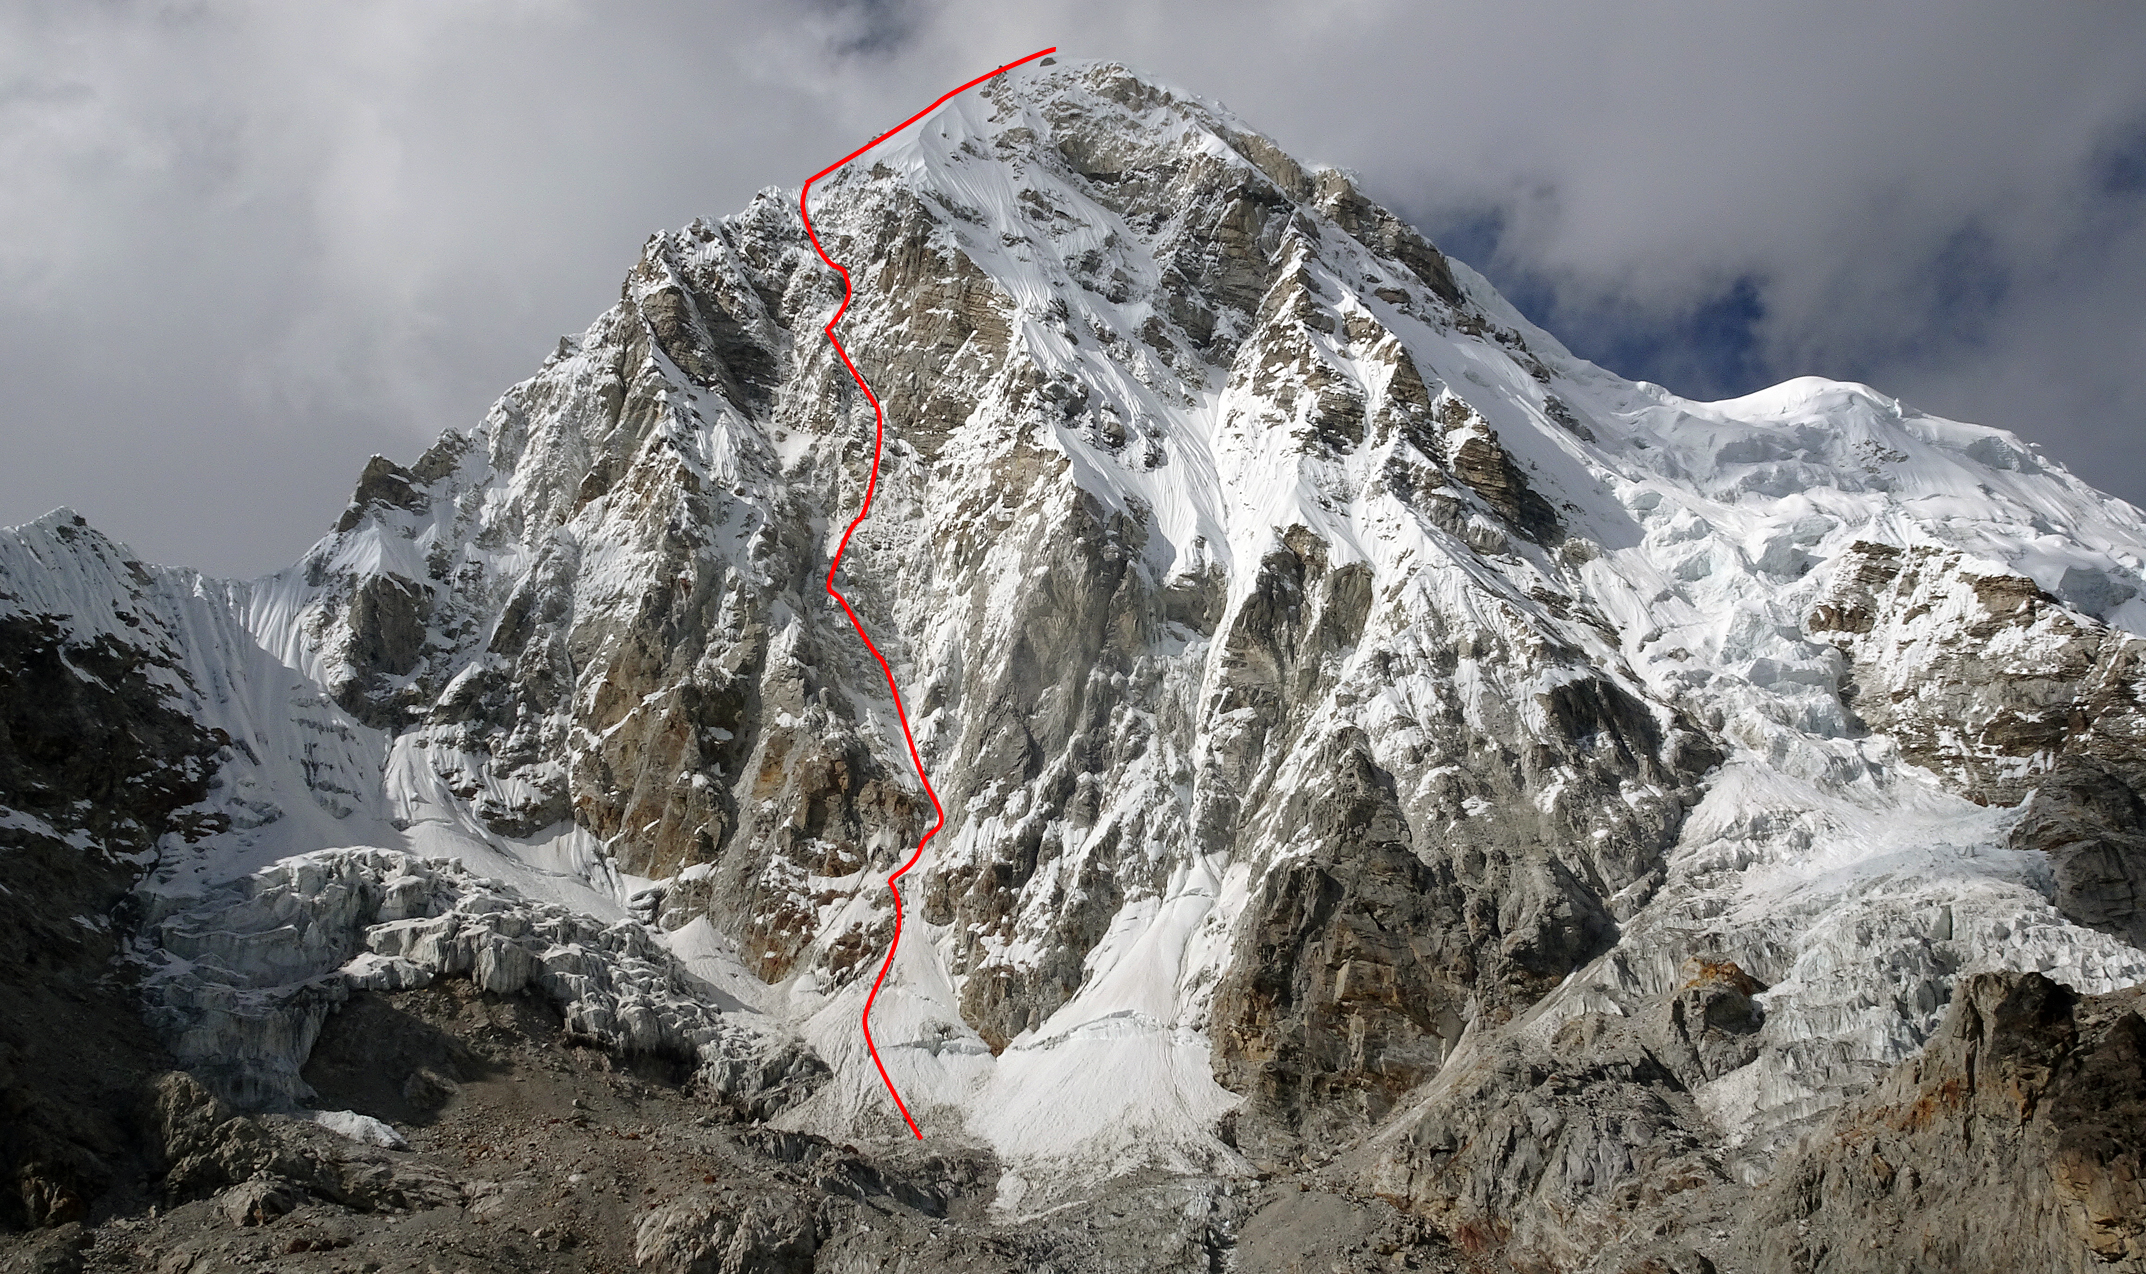 The southeast face of Pumori and the line of the 2018 Romanian route Le Voyage du Petit Prince. The 1986 Scottish Route and other lines up the face are all to the right of the big rock pillar. See photo in AAJ 2018.